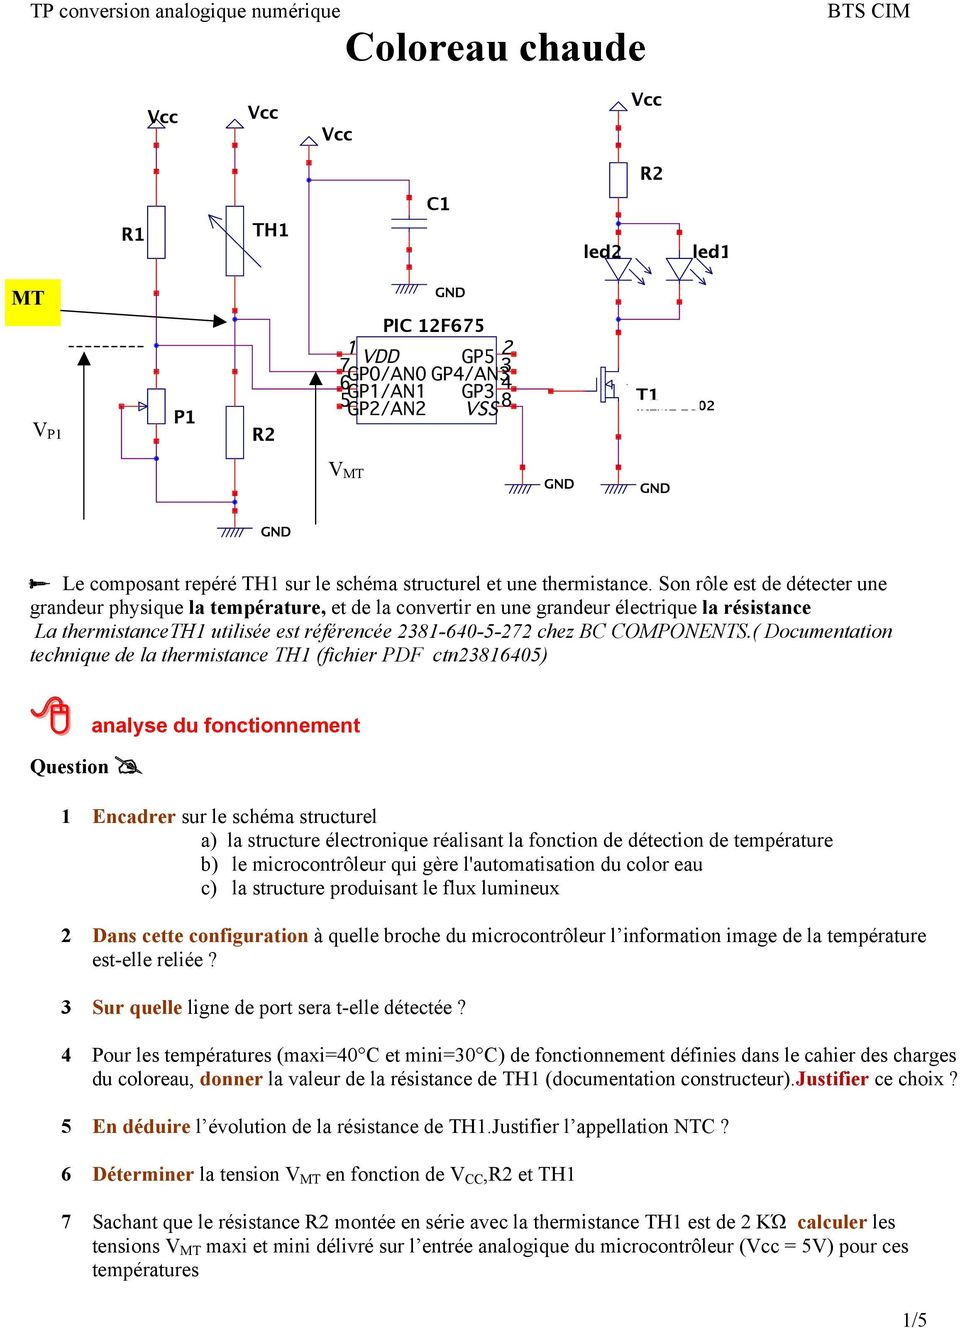 ( Documentation technique de la thermistance TH1 (fichier PDF ctn23816405)!